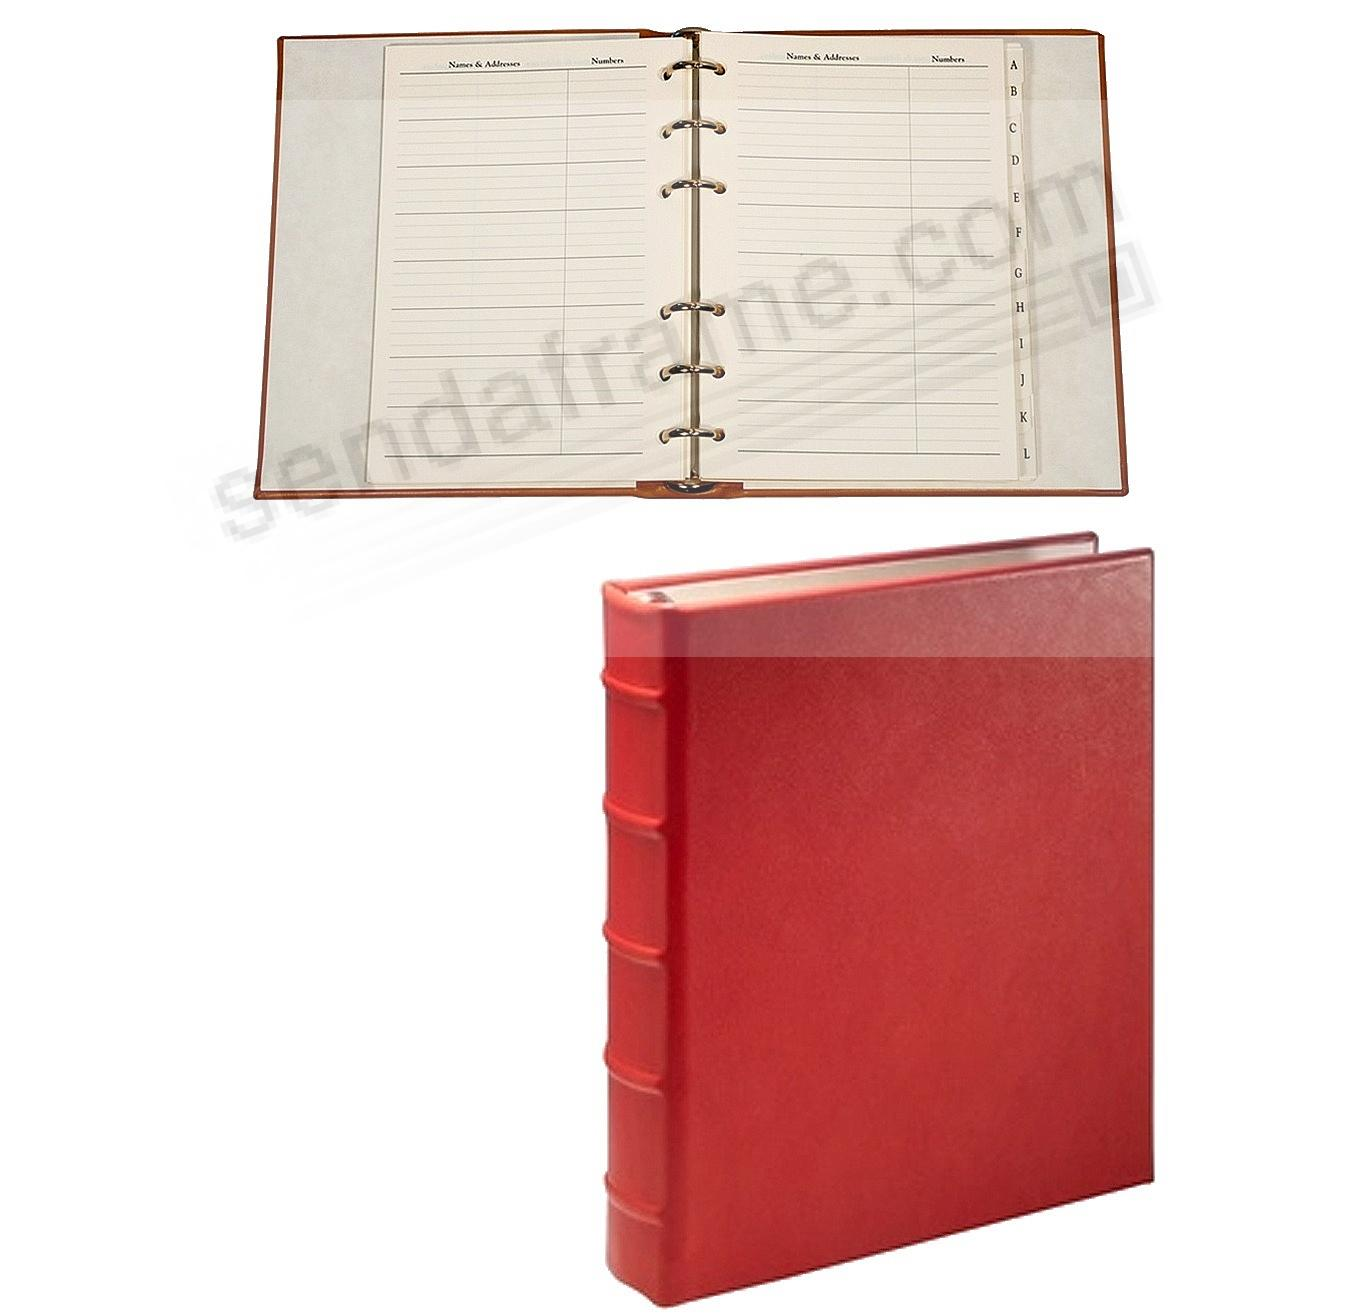 Desk Address Book - Refillable - RED Calfskin Leather by Graphic Image™